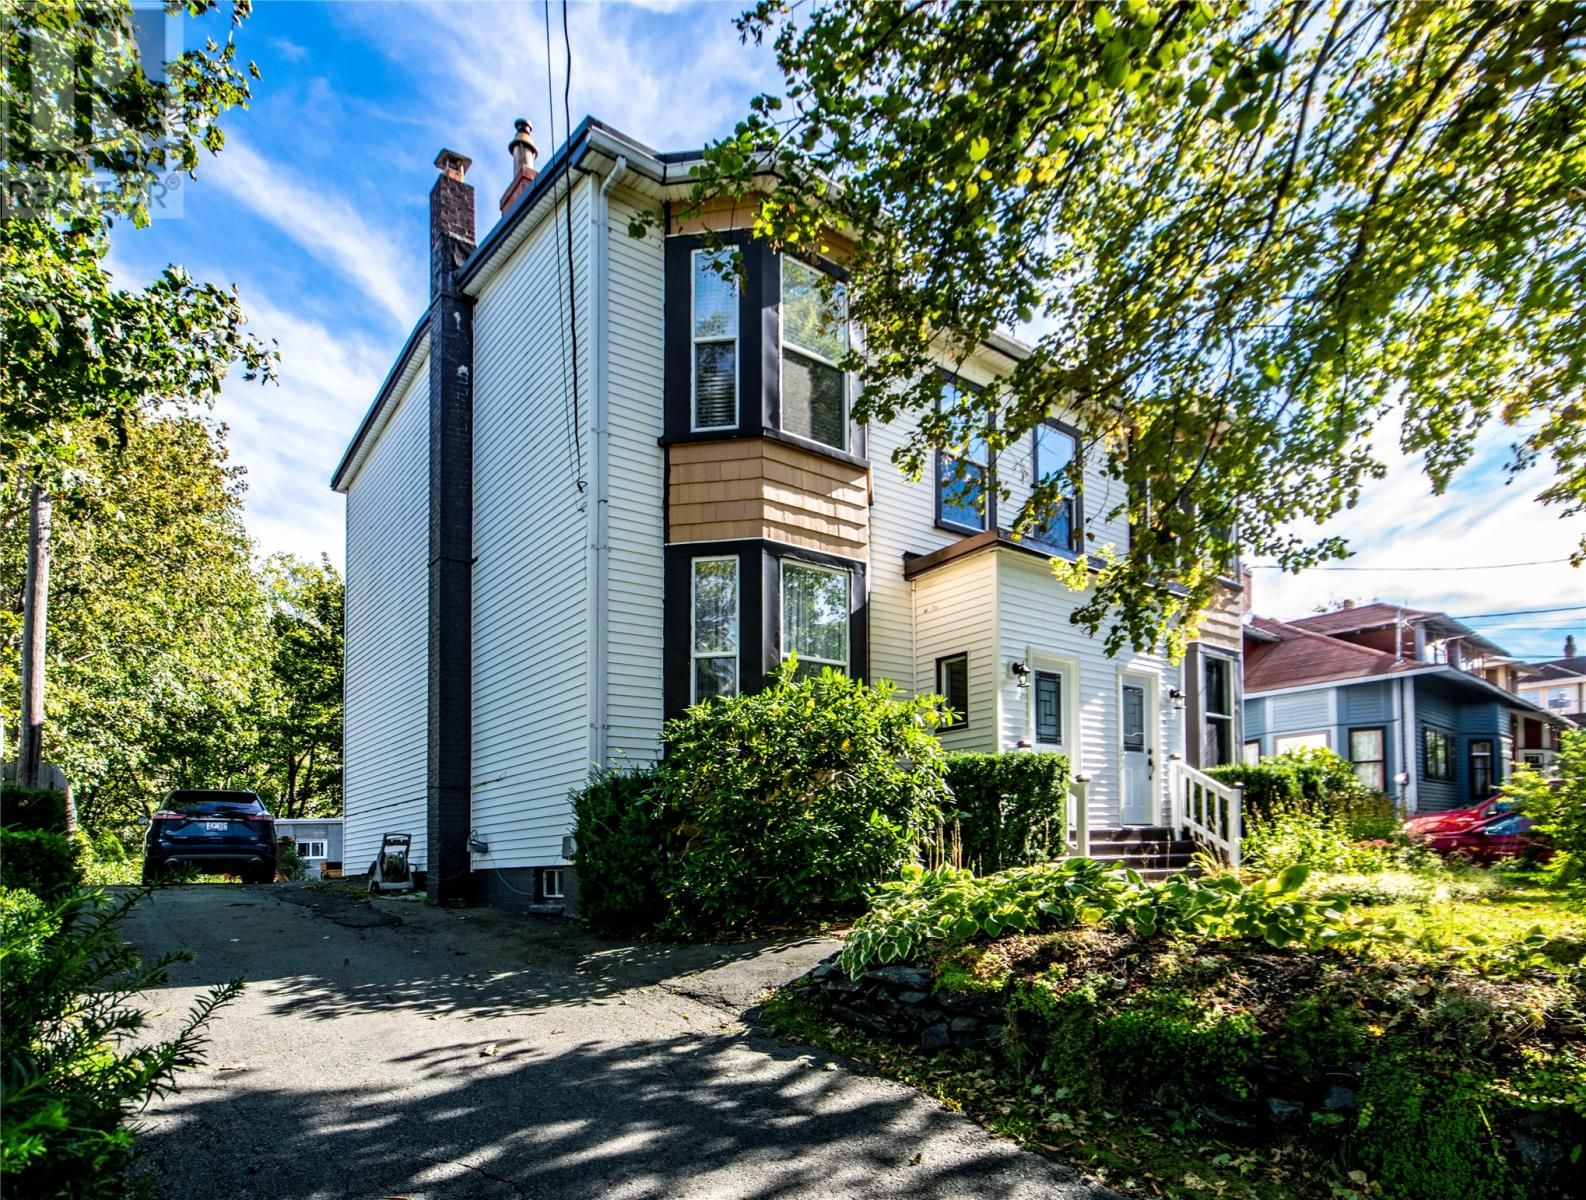 Main Photo: 11 Waterford Bridge Road in St. John's: House for sale : MLS®# 1237930